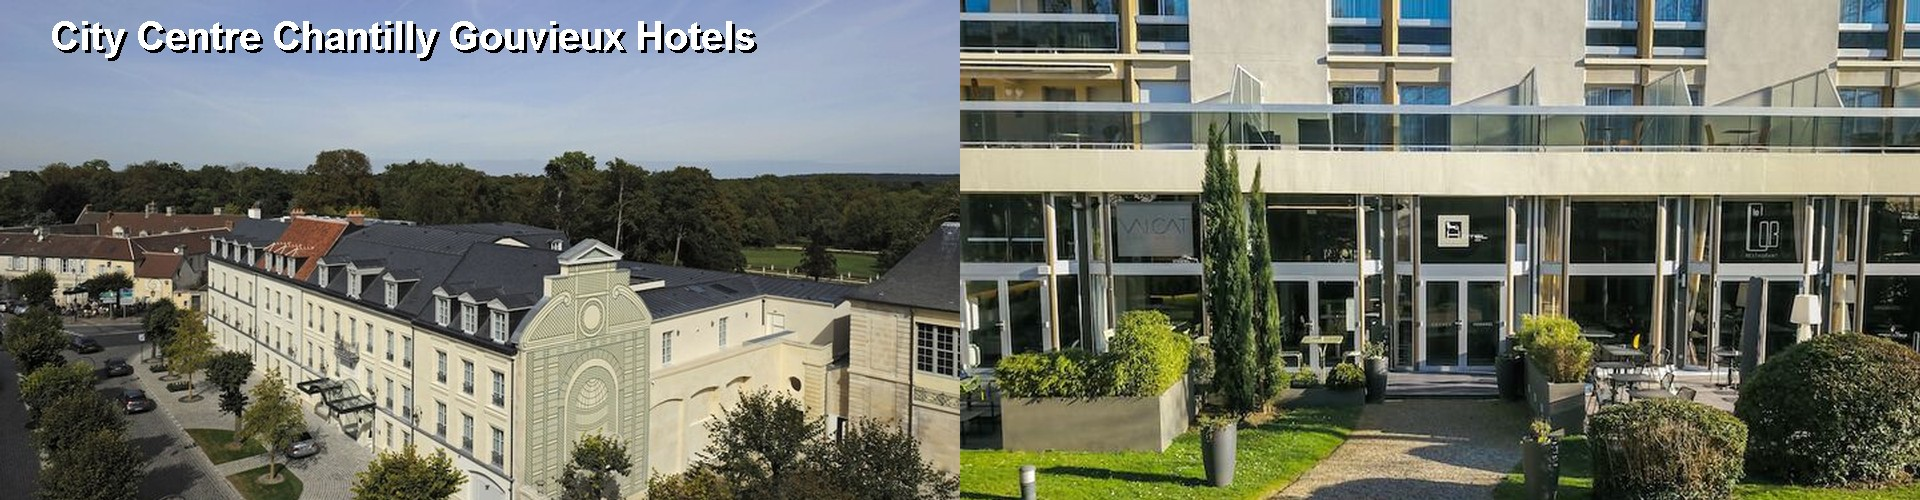 5 Best Hotels near City Centre Chantilly Gouvieux